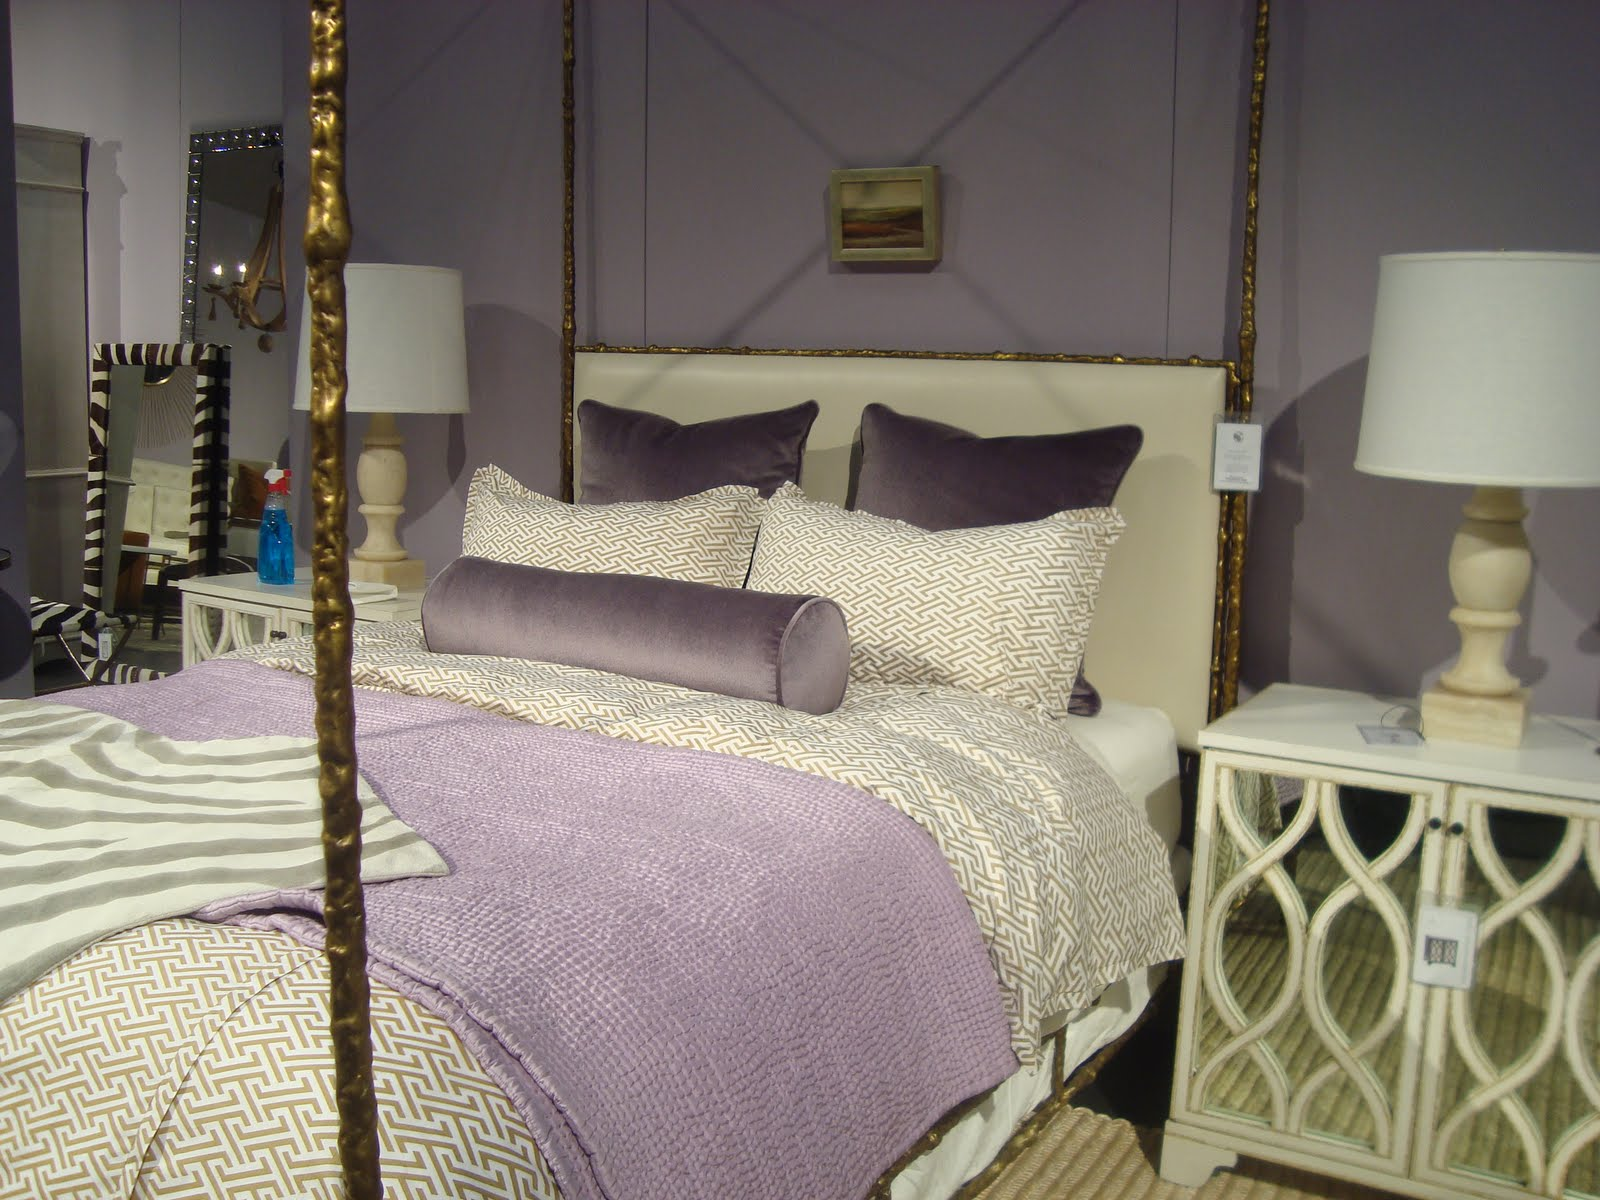 ... new color trend as seen in bedding and accessories from oly studio